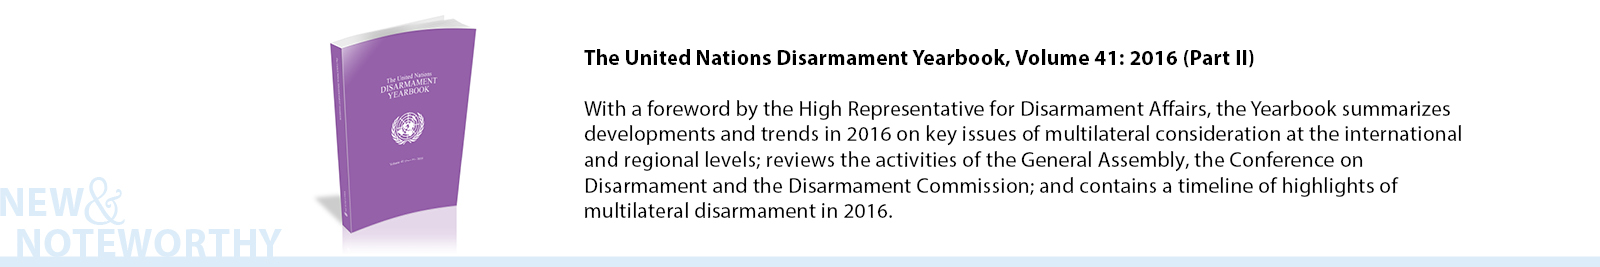 With a foreword by the High Representative for Disarmament Affairs, the Yearbook summarizes developments and trends in 2016 on key issues of multilateral consideration at the international and regional levels; reviews the activities of the General Assembly, the Conference on Disarmament and the Disarmament Commission; and contains a timeline of highlights of multilateral disarmament in 2015.